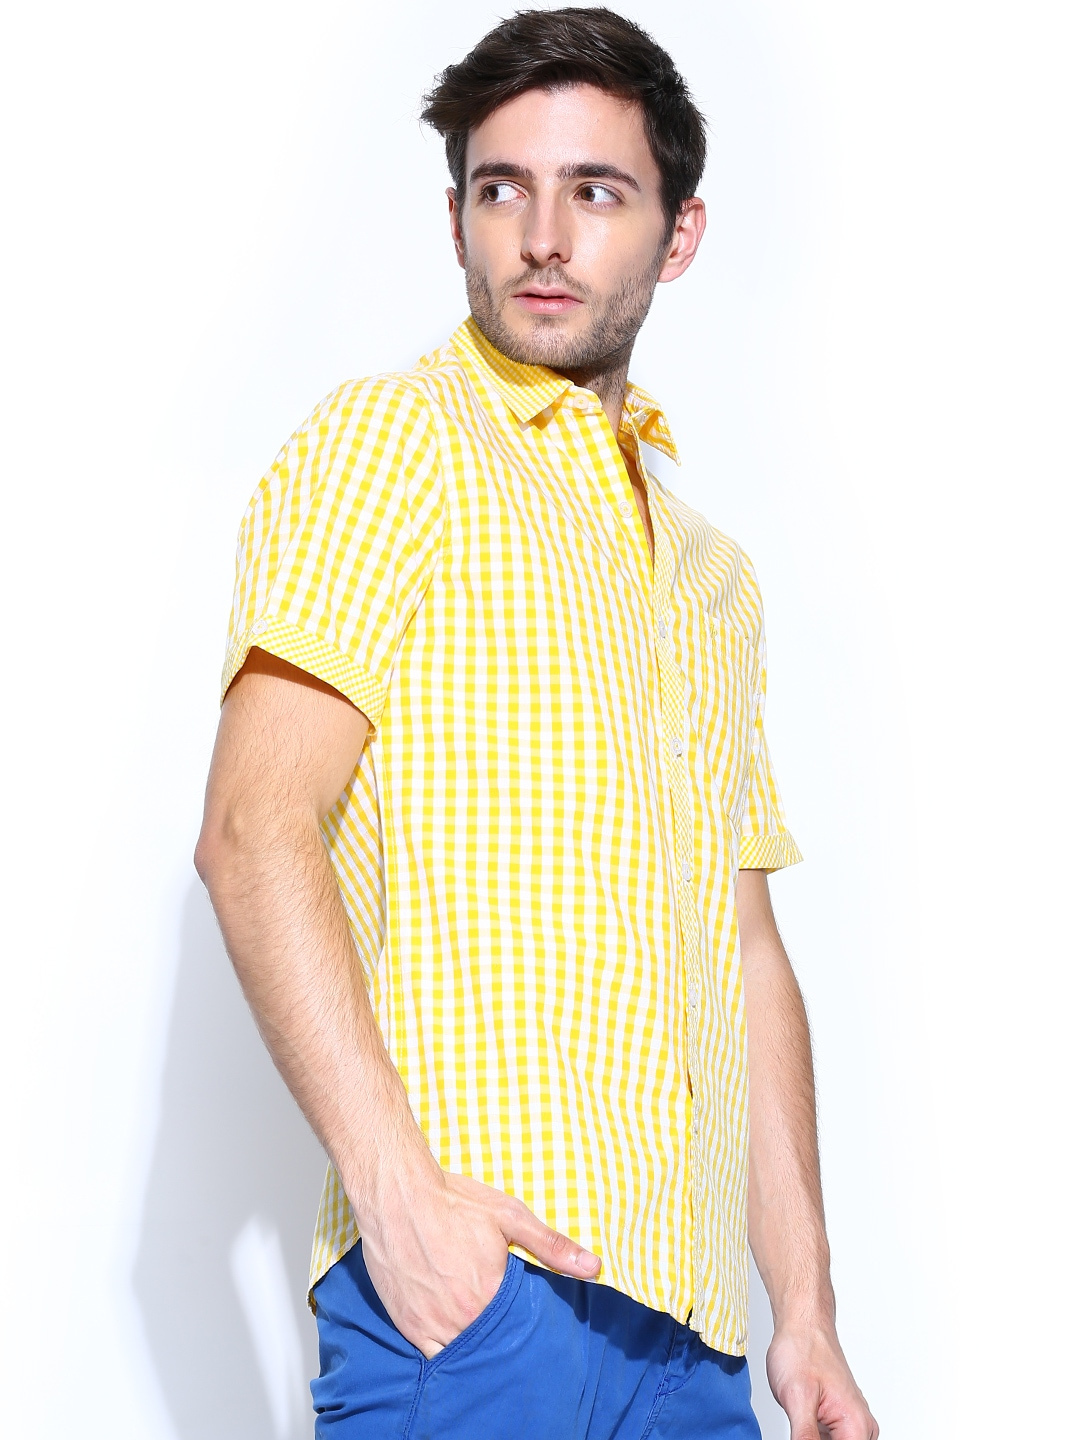 Women's Yellow Checked Shirt $ From Farfetch Price last checked 13 hours ago. Product prices and availability are accurate as of the date/time indicated and are subject to change. Any price and availability information displayed on partners' sites at the time of purchase will apply to .